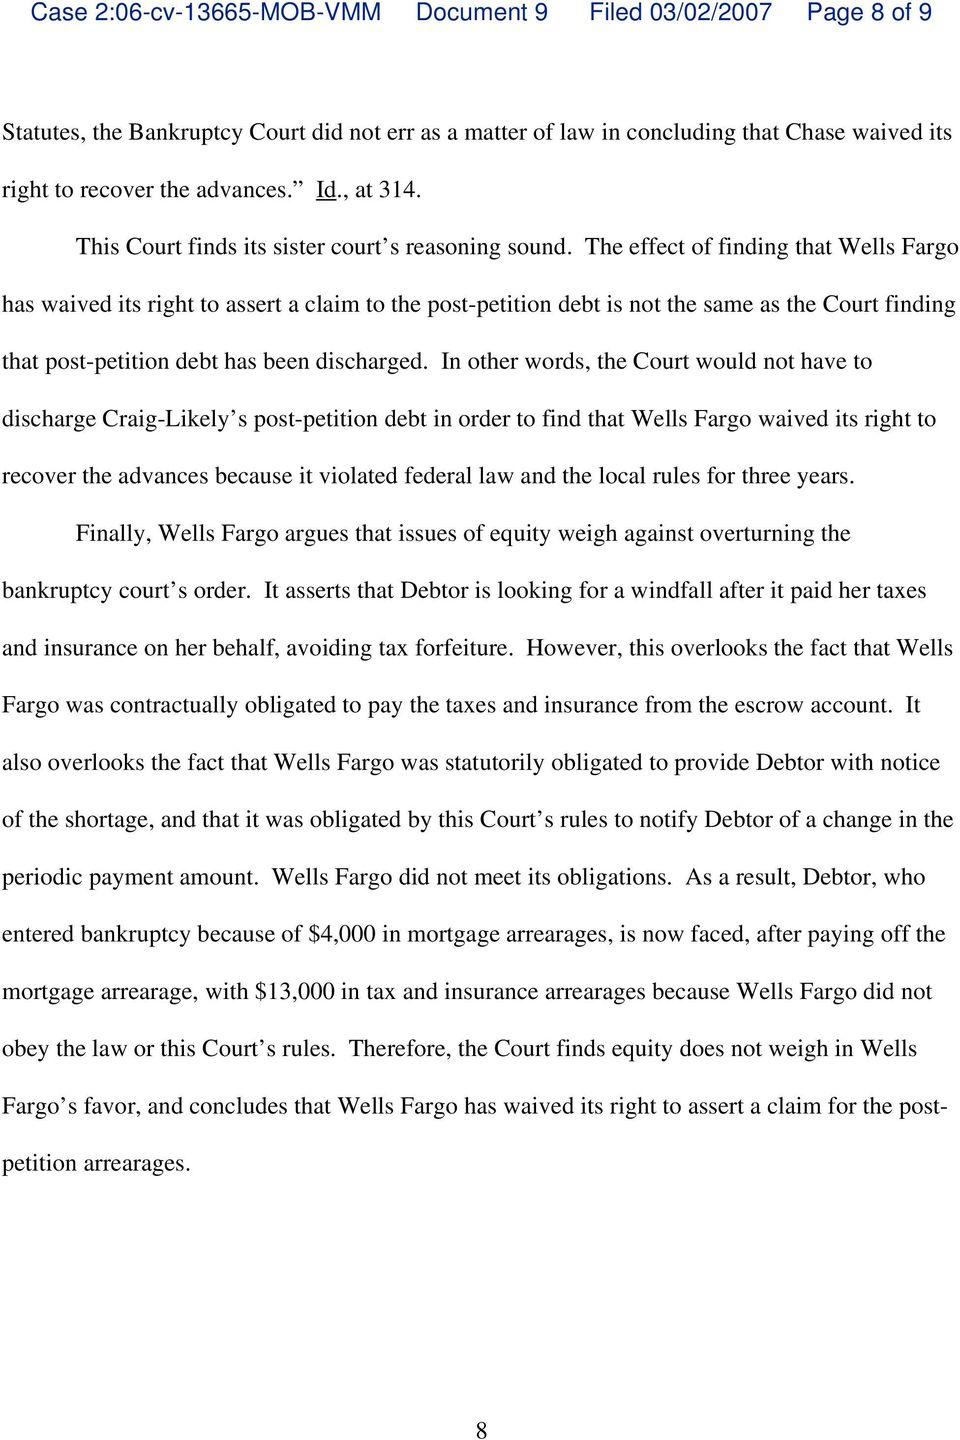 The effect of finding that Wells Fargo has waived its right to assert a claim to the post-petition debt is not the same as the Court finding that post-petition debt has been discharged.